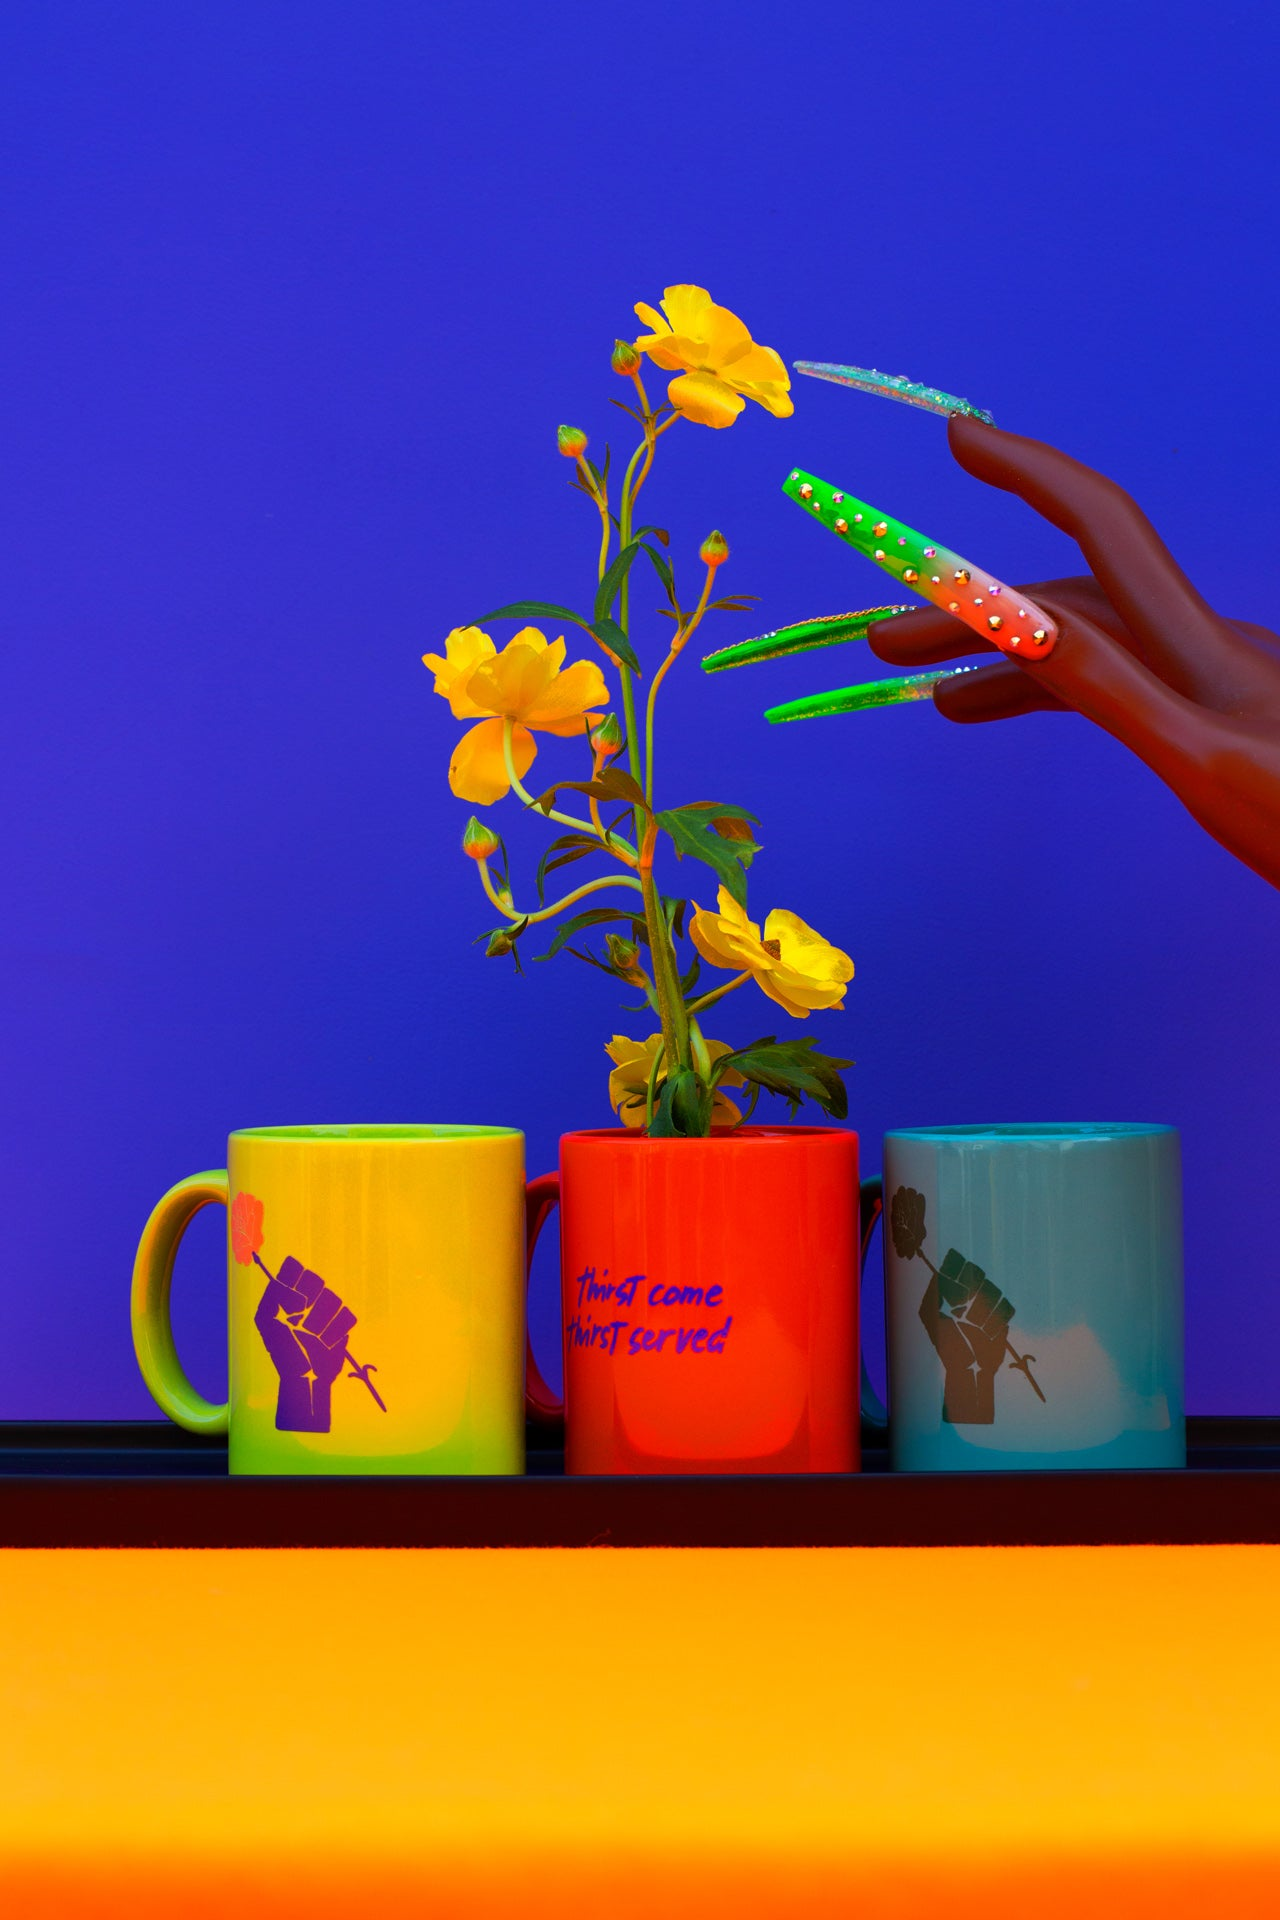 teal, lime, and orange mugs with yellow flowers